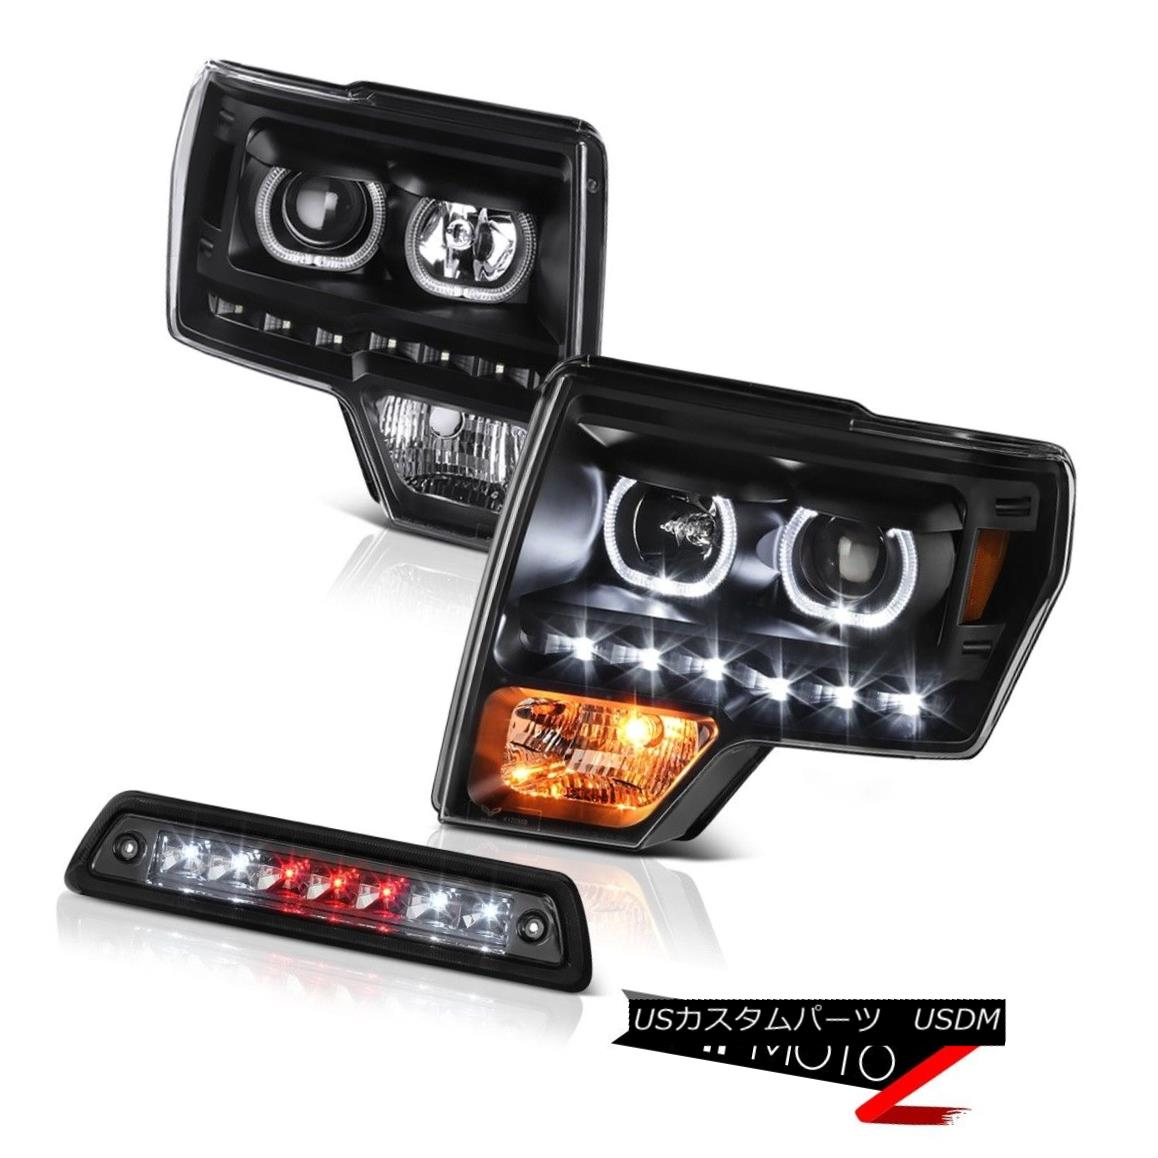 ヘッドライト 09-14 F150 FX4 Third brake lamp infinity black headlights LED Halo Rim Dual Halo 09-14 F150 FX4第3ブレーキランプ無限黒ヘッドライトLED Halo Rim Dual Halo